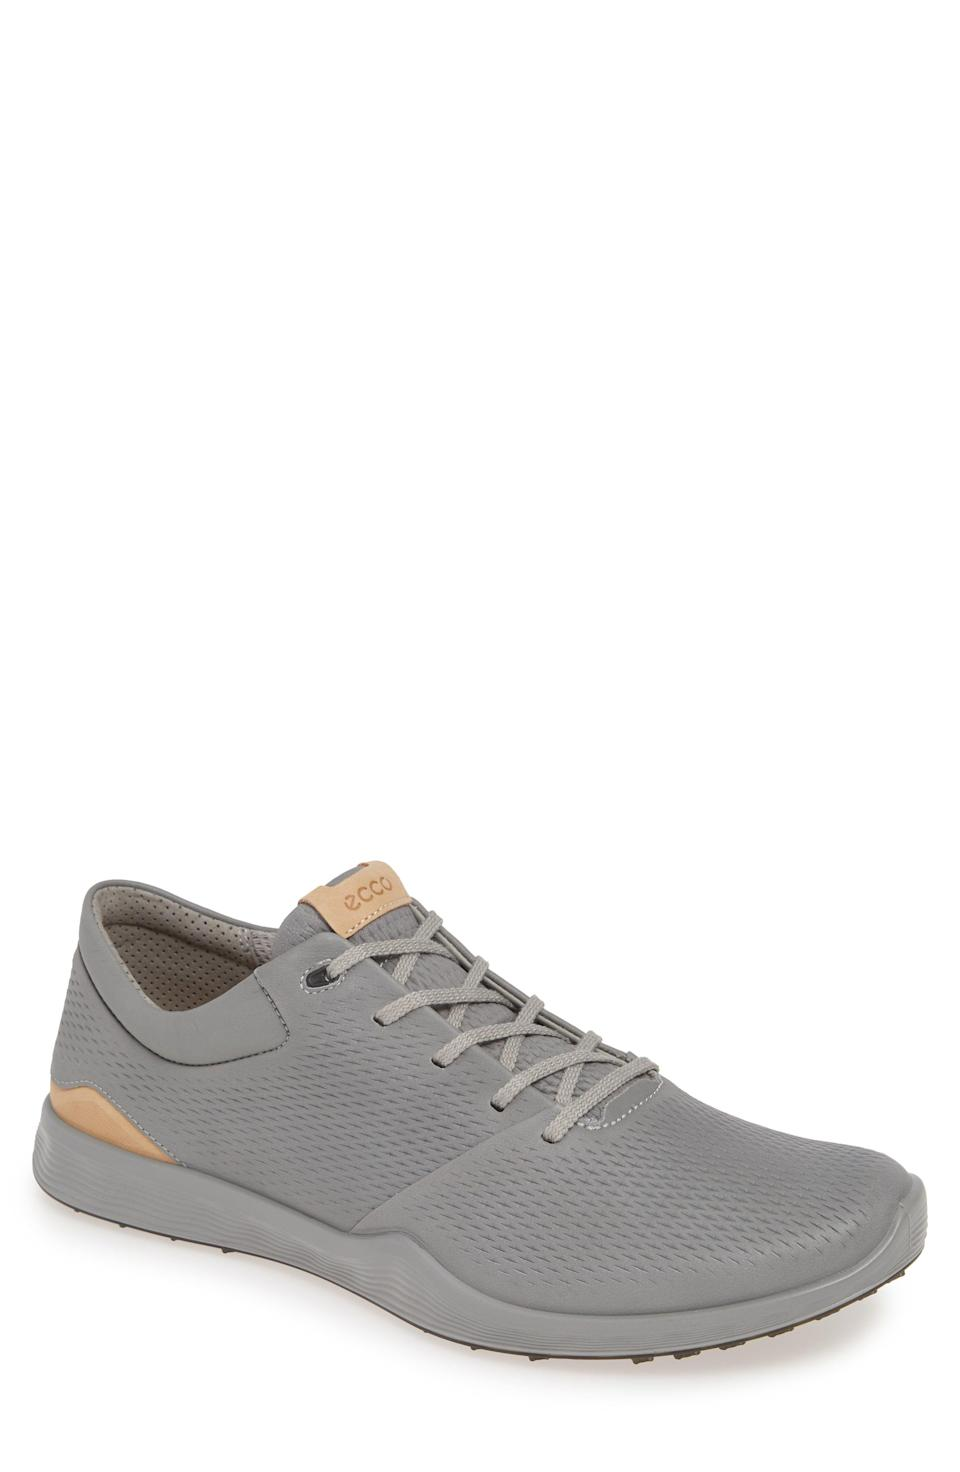 "<p><strong>ECCO</strong></p><p>nordstrom.com</p><p><strong>$160.00</strong></p><p><a href=""https://go.redirectingat.com?id=74968X1596630&url=https%3A%2F%2Fshop.nordstrom.com%2Fs%2Fecco-s-lite-golf-sneaker-men%2F5485421&sref=https%3A%2F%2Fwww.womenshealthmag.com%2Flife%2Fg33501922%2Funique-gift-ideas-for-men%2F"" rel=""nofollow noopener"" target=""_blank"" data-ylk=""slk:Shop Now"" class=""link rapid-noclick-resp"">Shop Now</a></p><p>His old, dingy golf shoes definitely need an upgrade this year. These supple sneaks are made of lightweight yak leather and have a perforated texture for breathability.</p>"